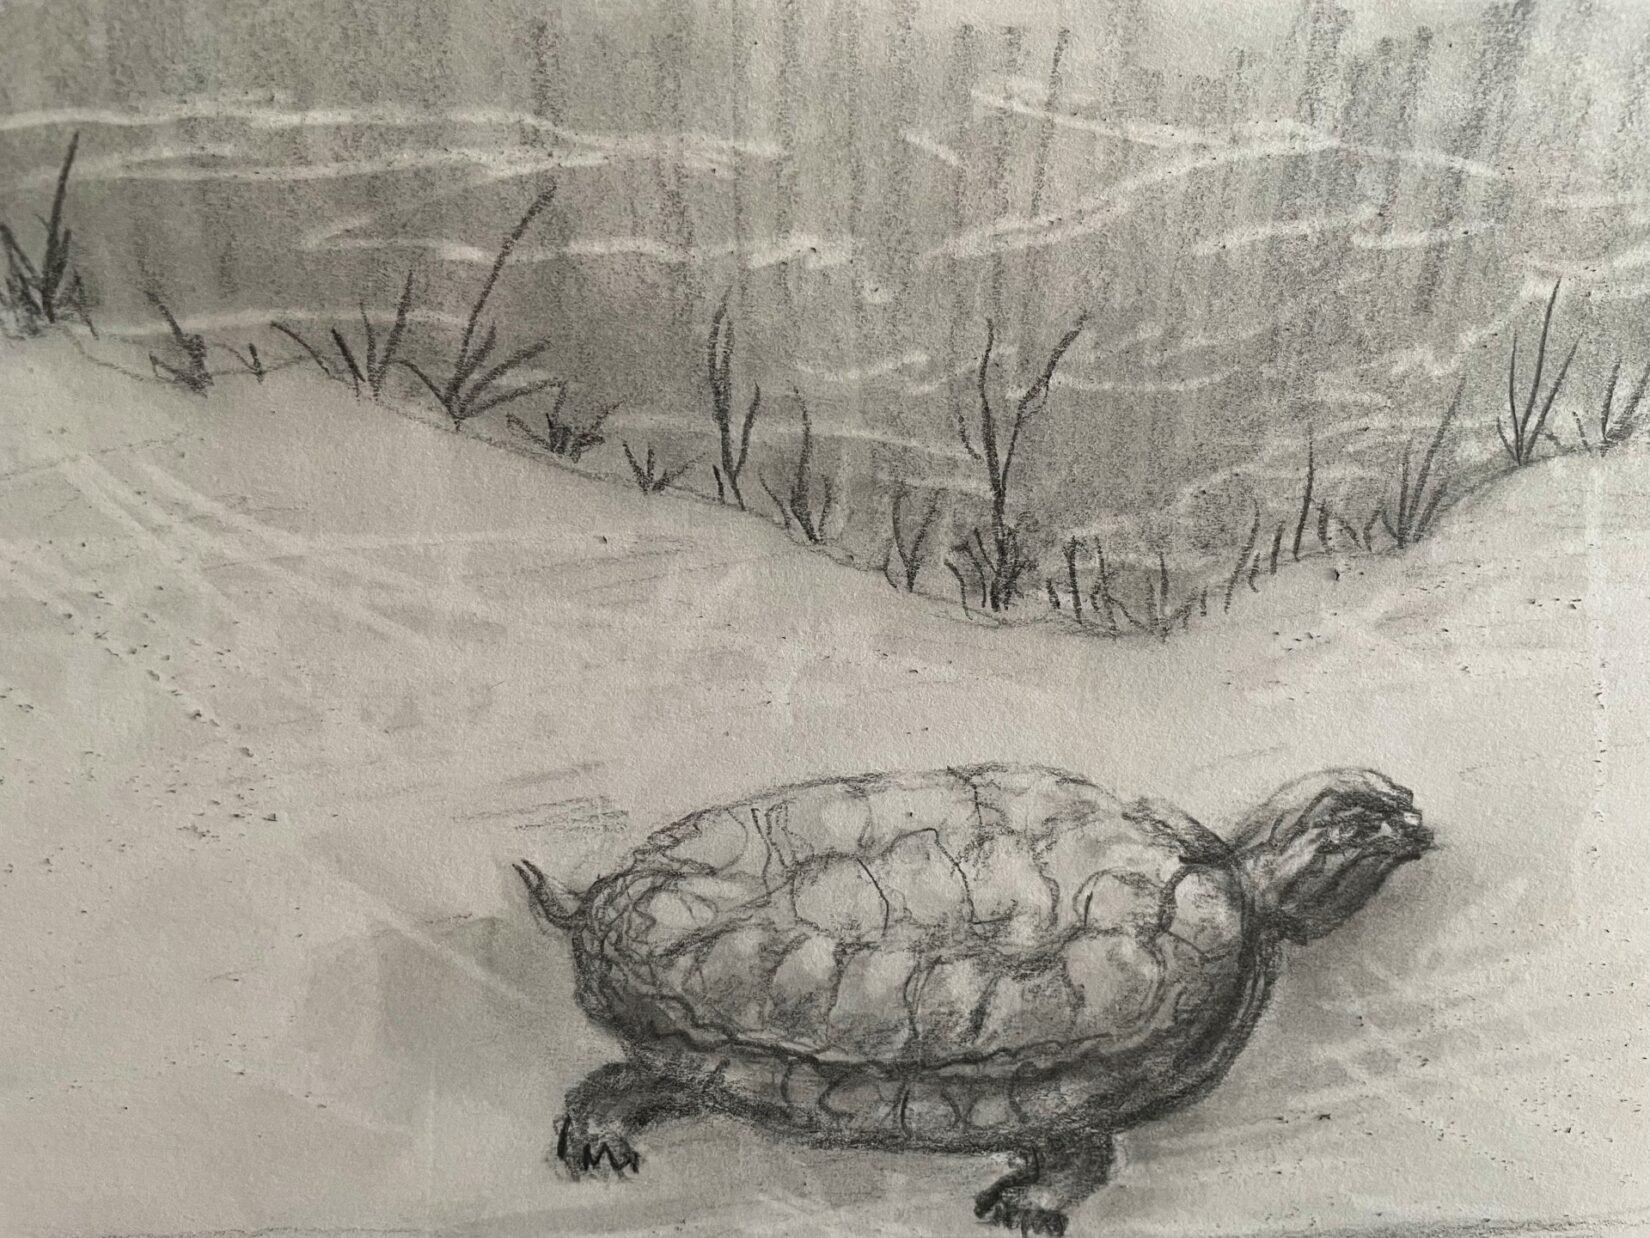 A pencil drawing of a turtle